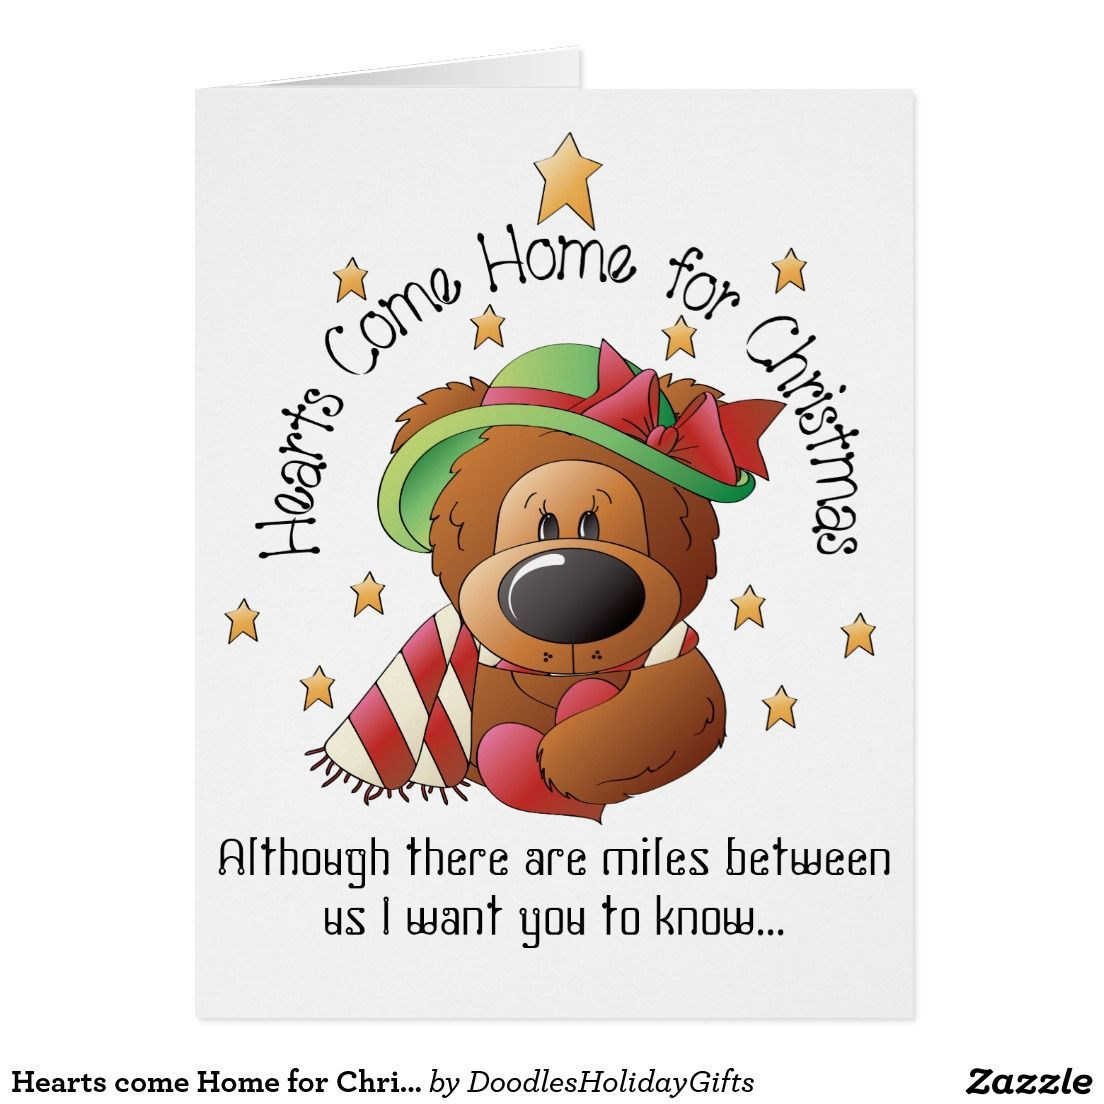 Hearts come Home for Christmas bear big card | Pinterest